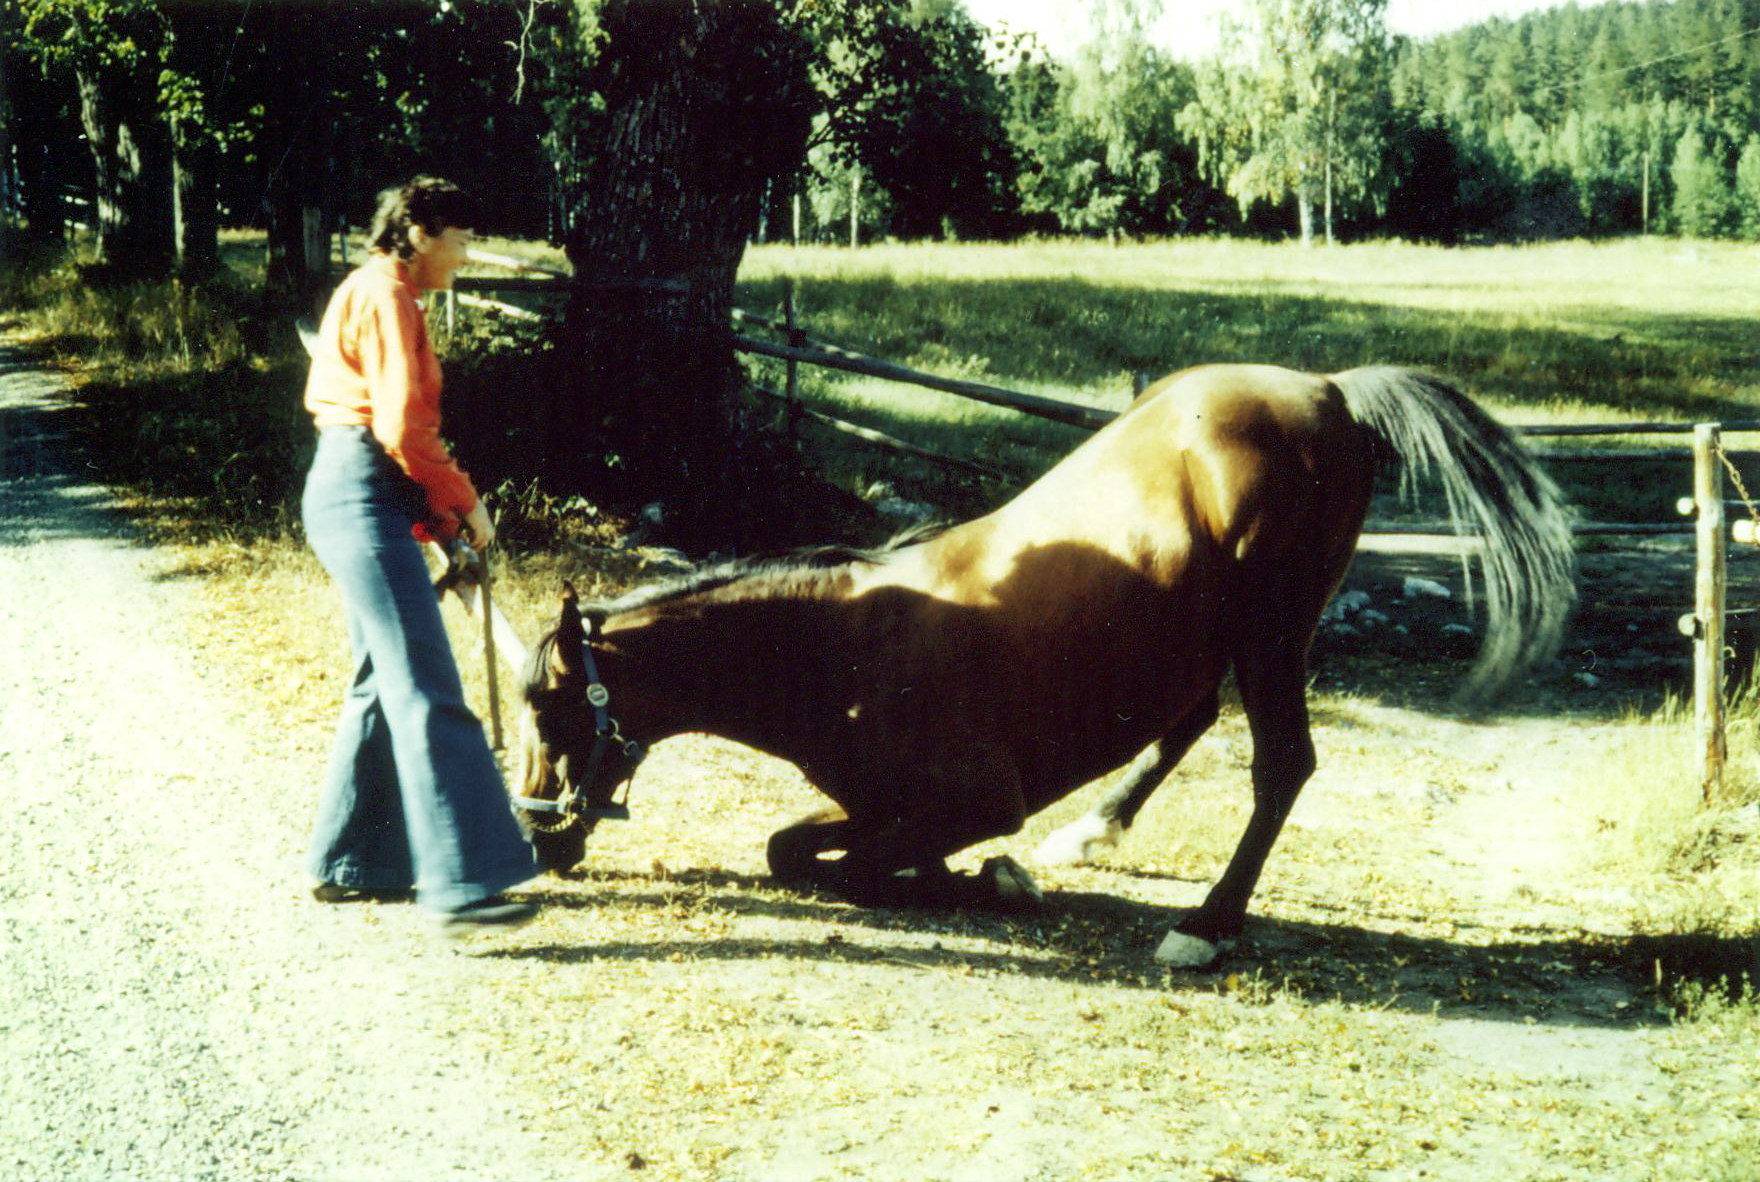 Brita and one of the famous Polish circus-stallions imported from Circus Knie in Switzerland by Erik Erlandsson. Photo: private